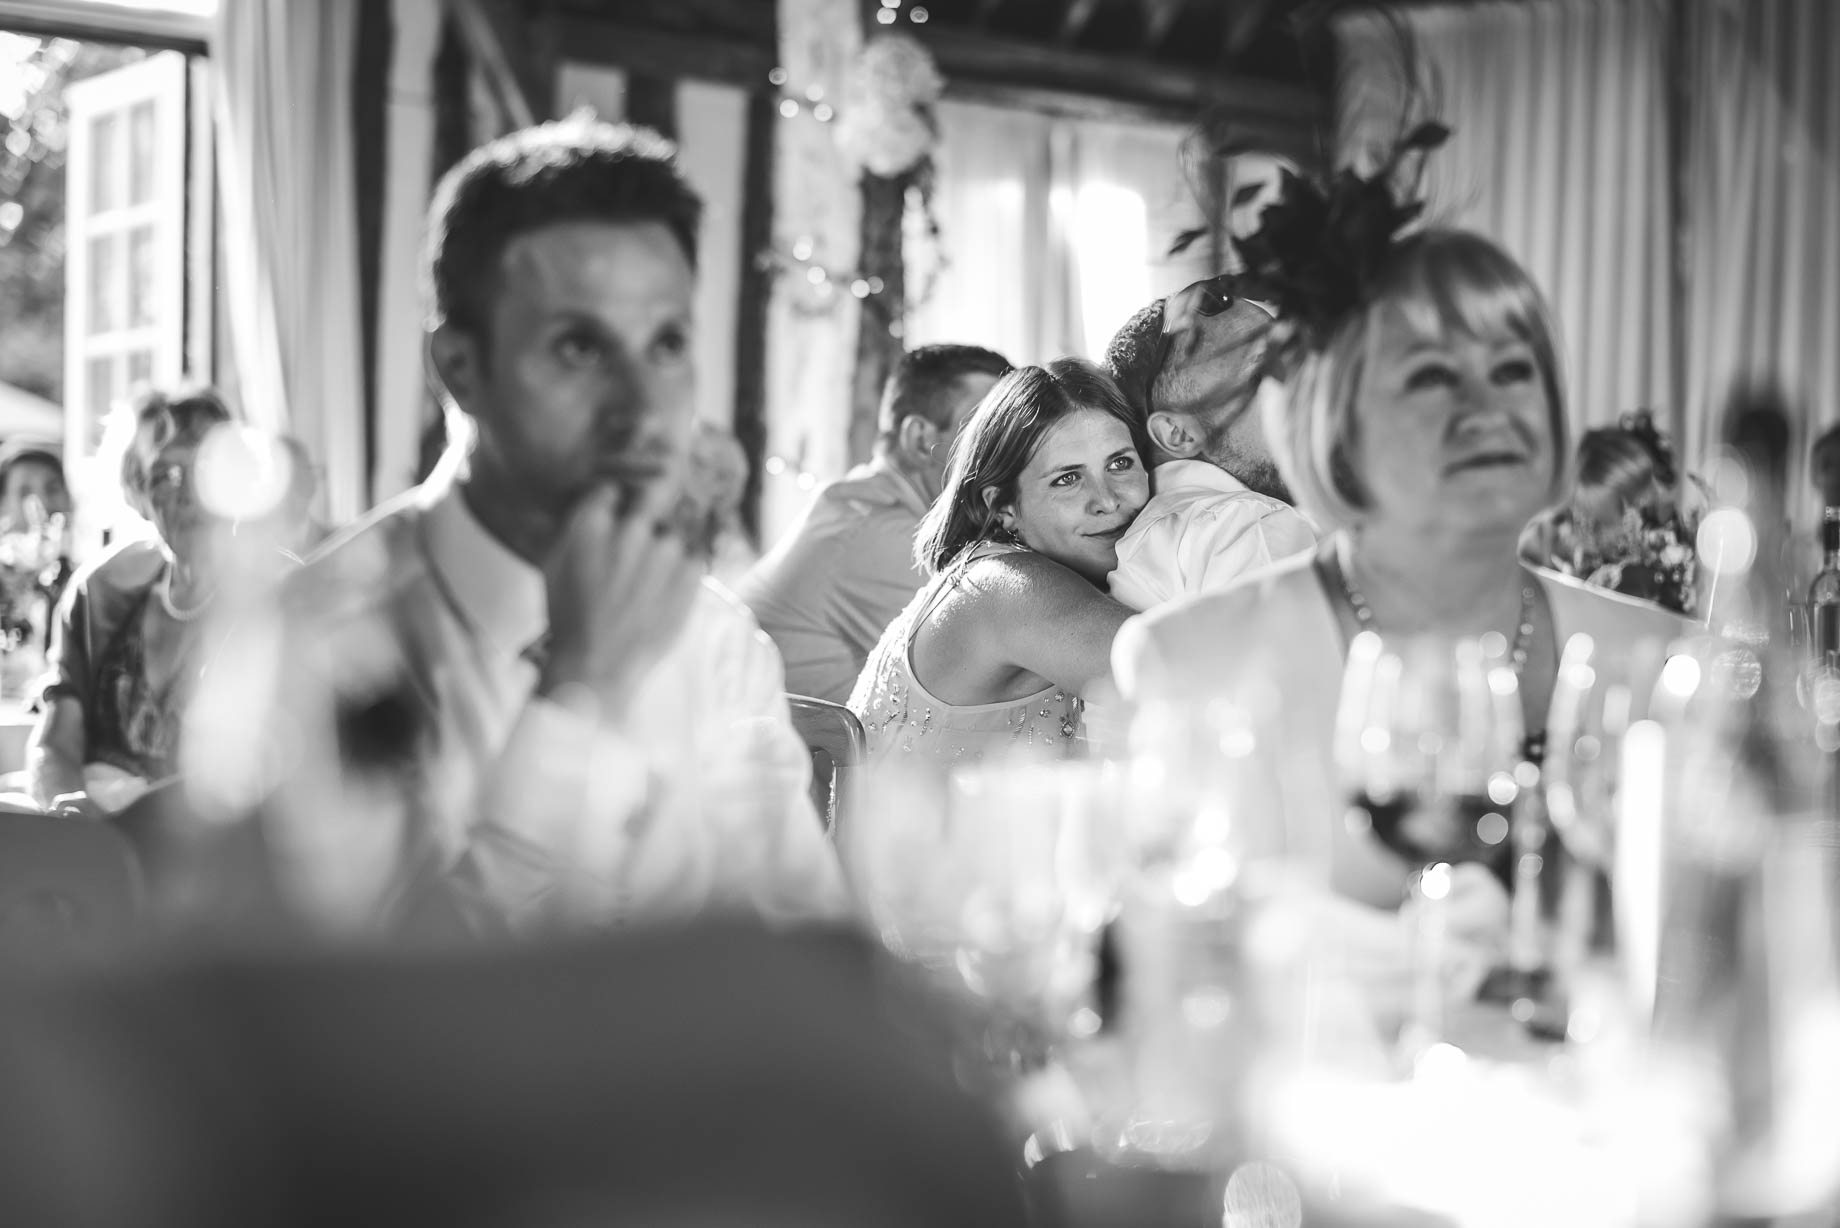 Clock Barn wedding photography by Guy Collier Photography- Rebecca and Dom (159 of 198)